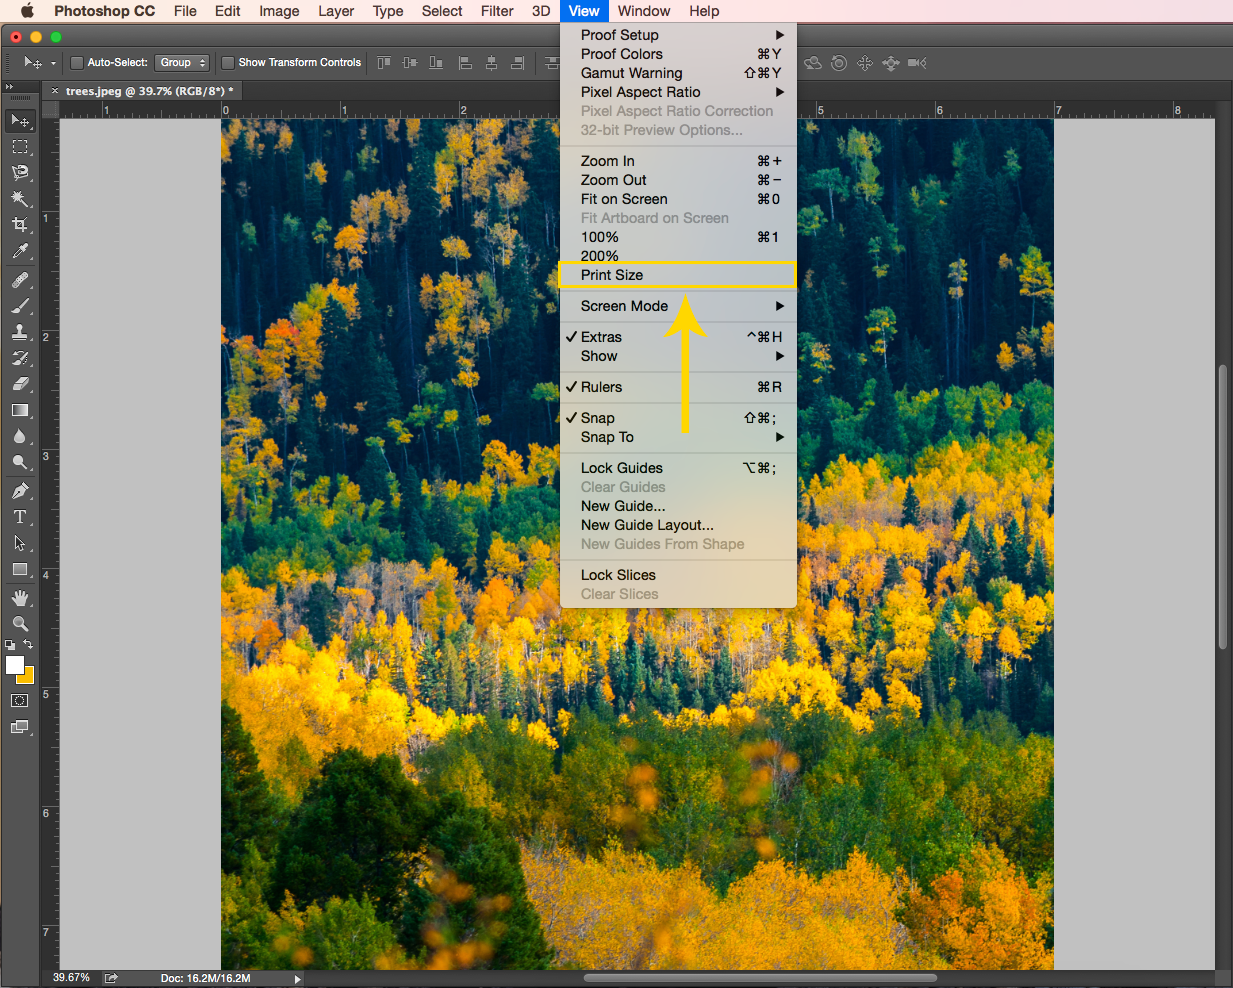 How to View a Photo at Print Size: From the menu click View and then Print Size